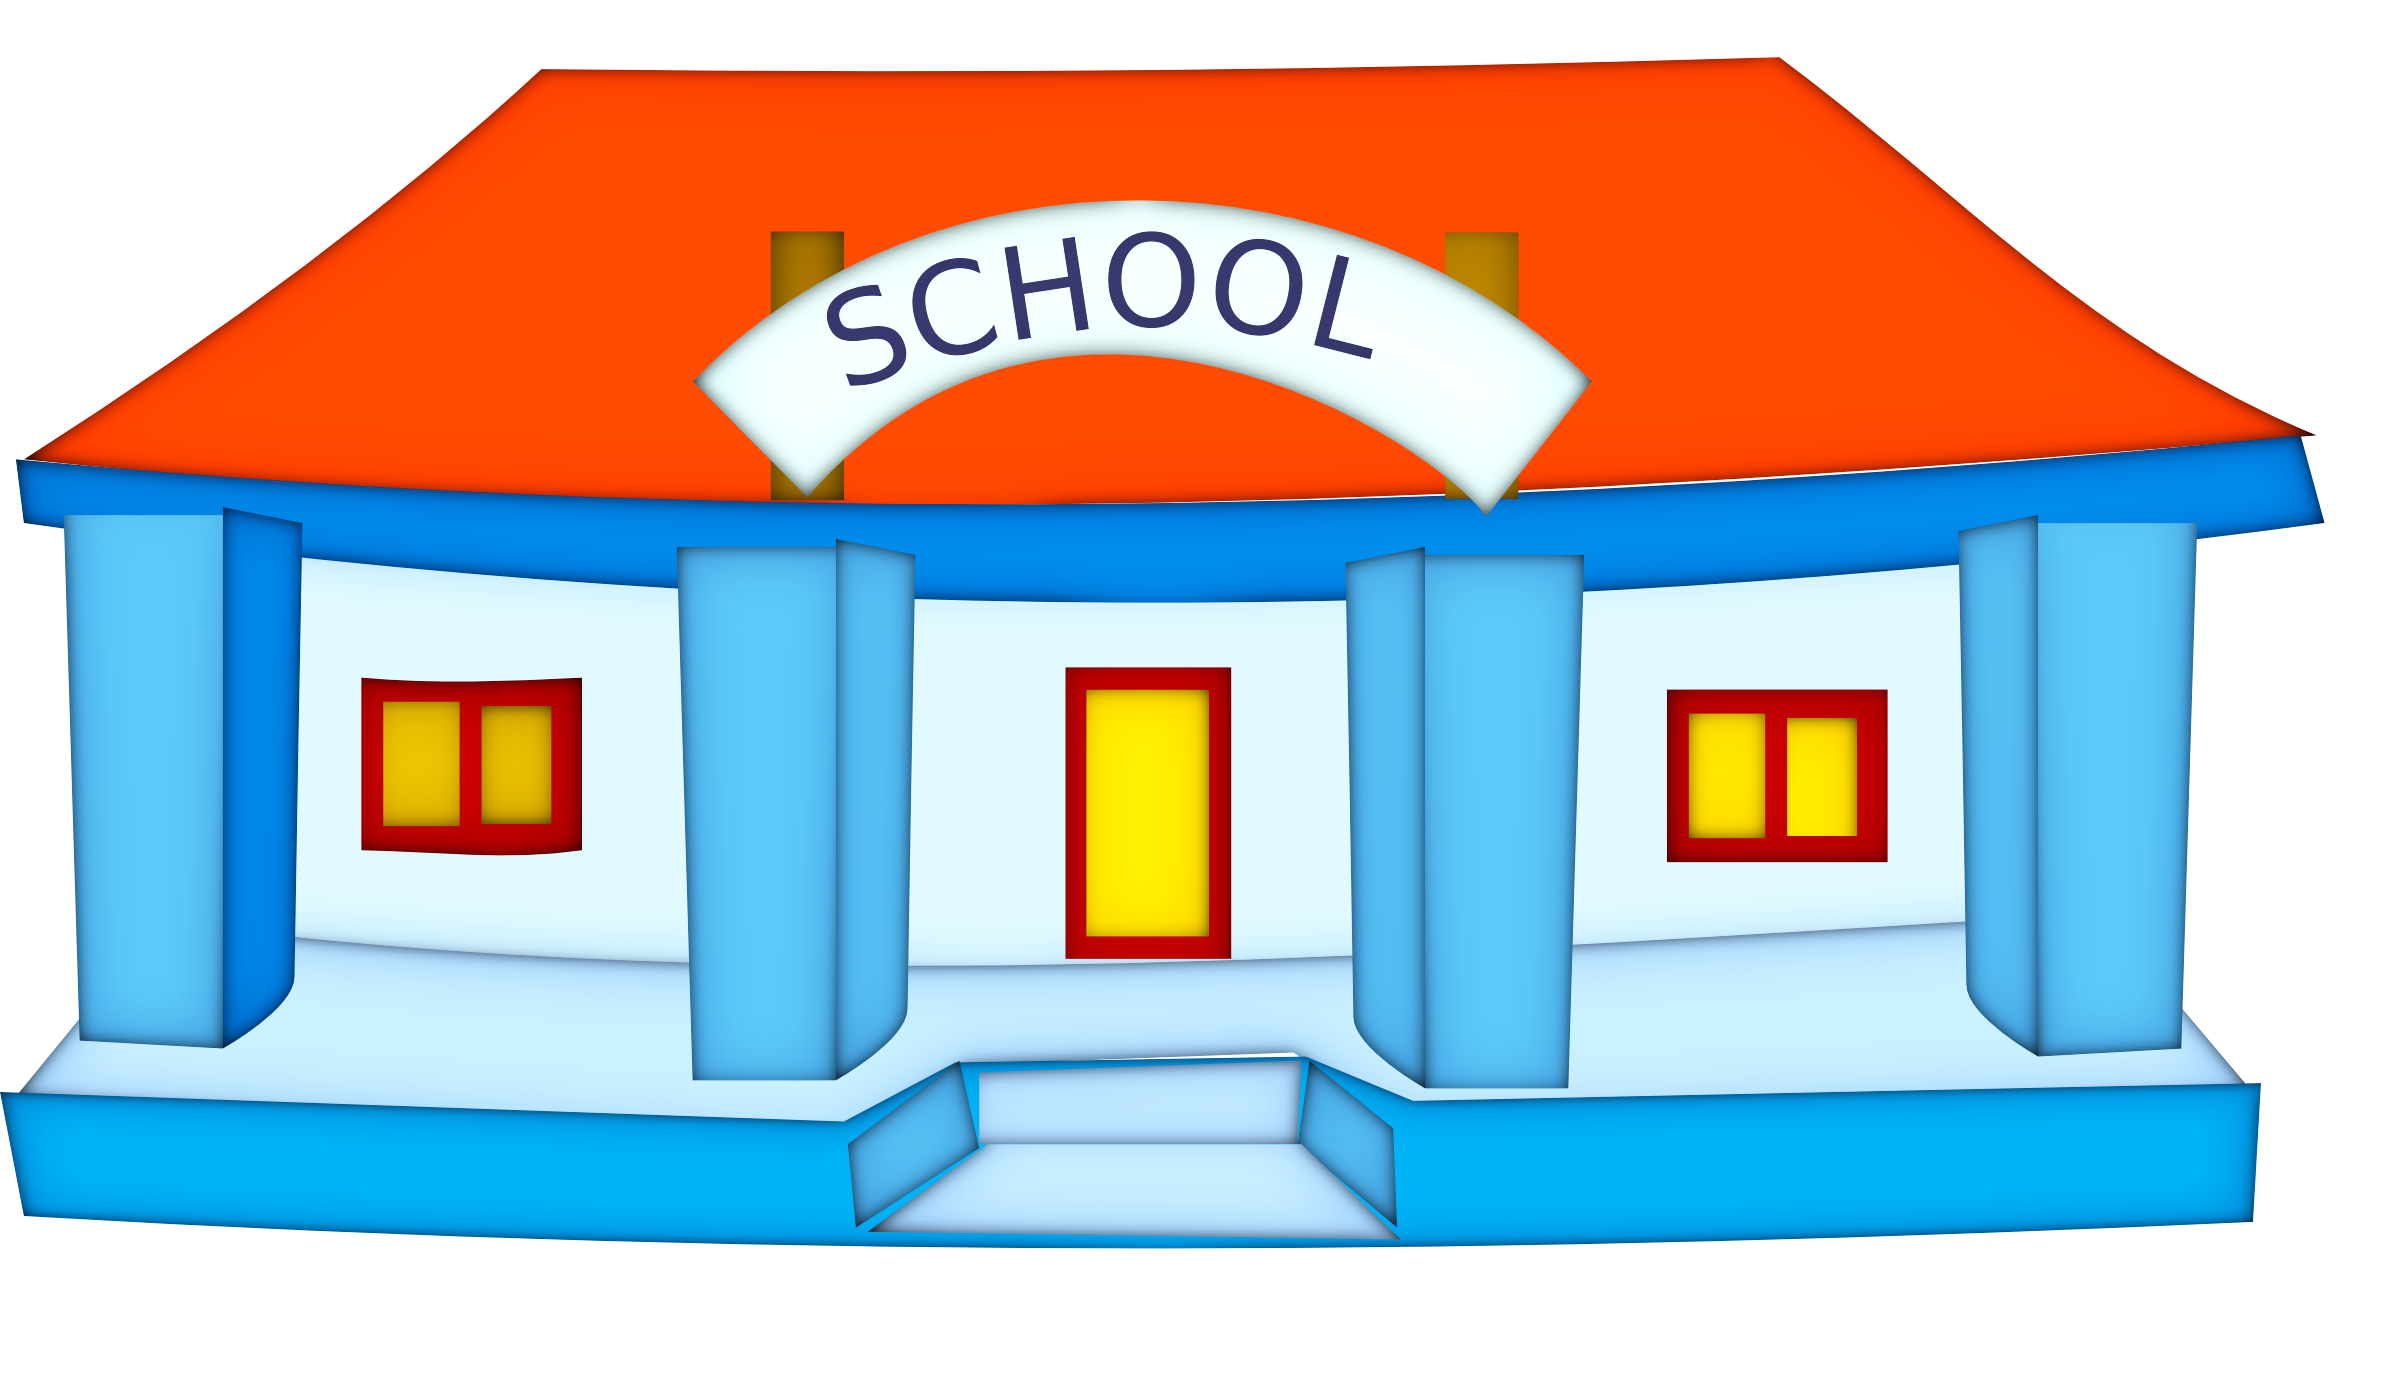 banner freeuse stock  collection of philippine. School clipart.